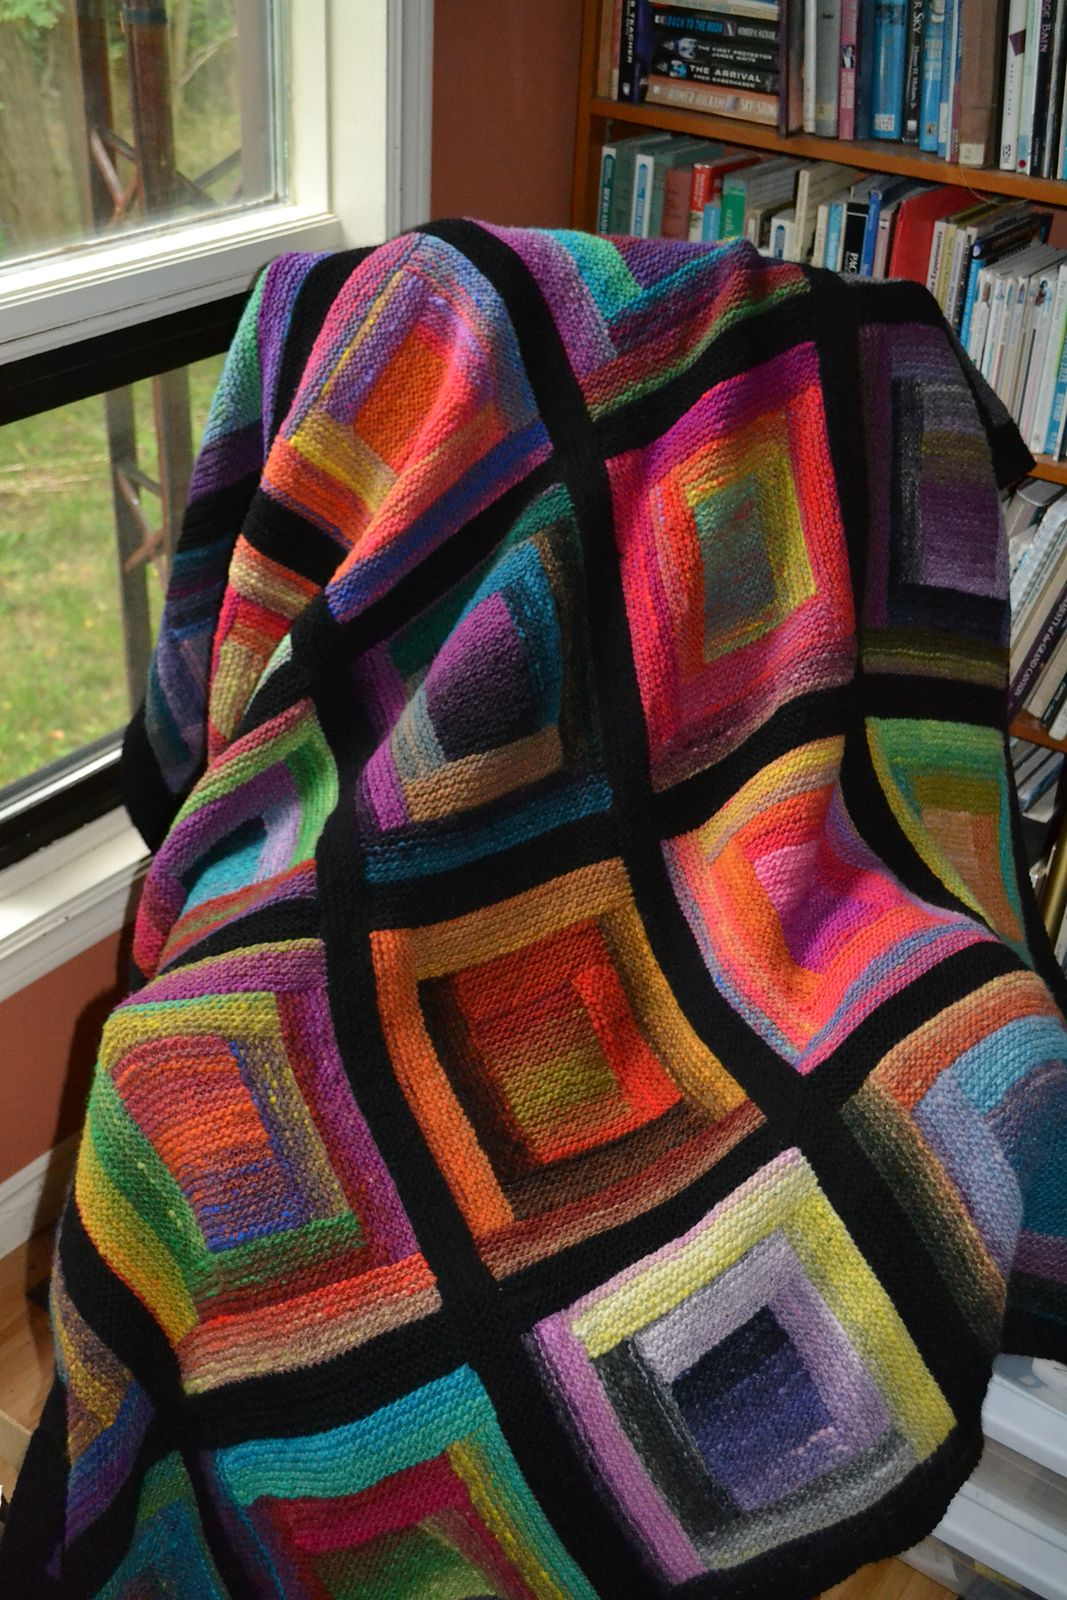 Ravelry muumis the raku of wool free pattern noro kureyon ravelry muumis the raku of wool free pattern noro kureyon knitting blanketscrochet bankloansurffo Image collections